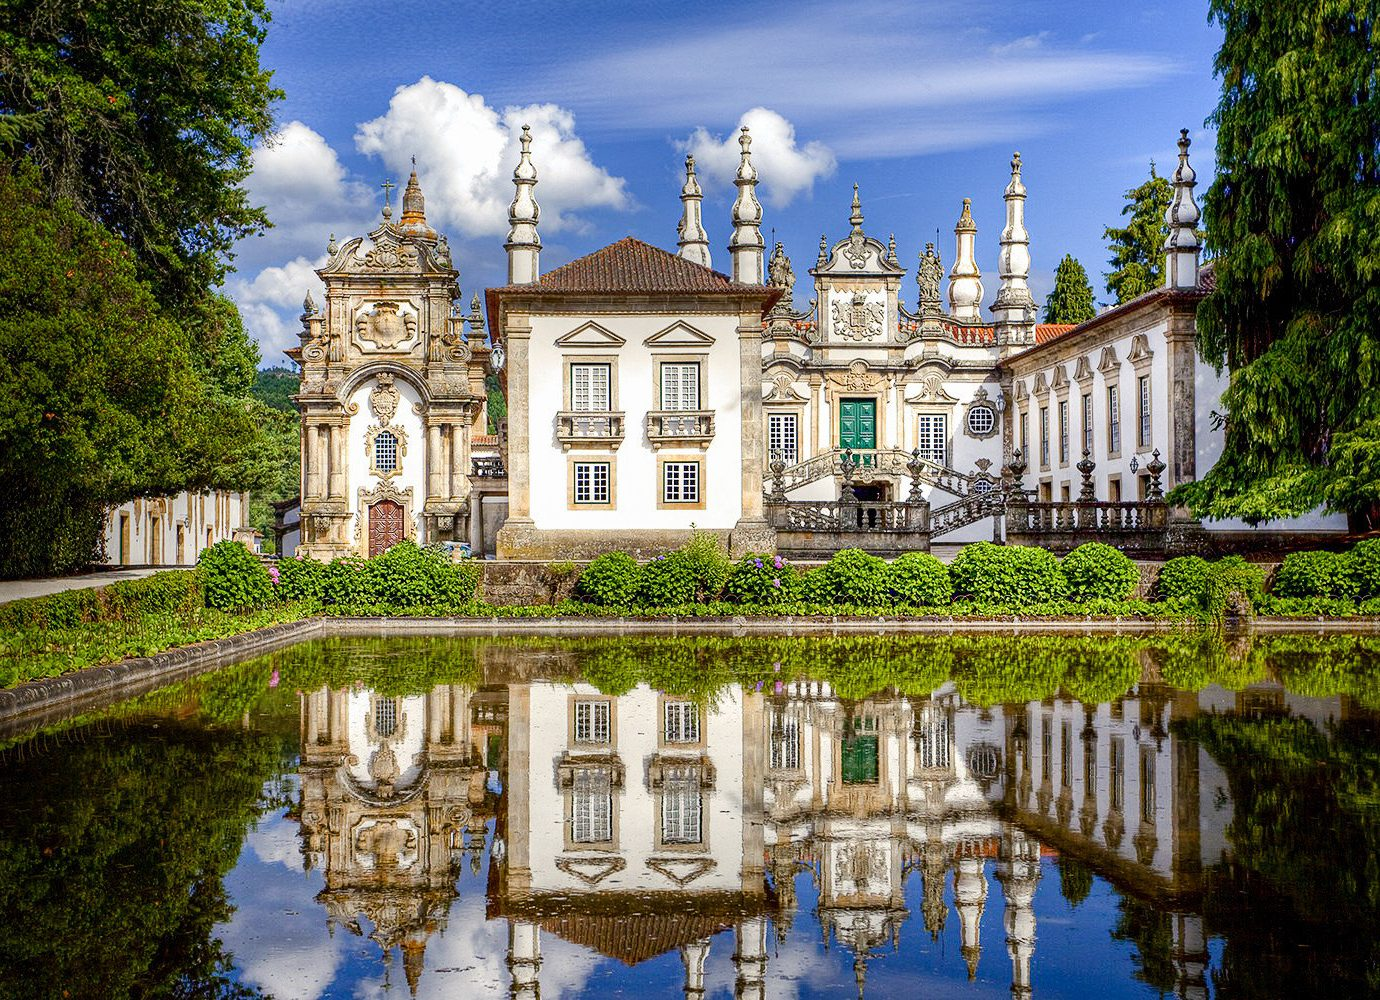 Cruise Travel Luxury Travel tree outdoor reflection Nature water château landmark sky waterway estate stately home mansion national trust for places of historic interest or natural beauty tourist attraction palace watercourse building water castle Villa home real estate manor house facade historic site tourism house landscape old government building stone